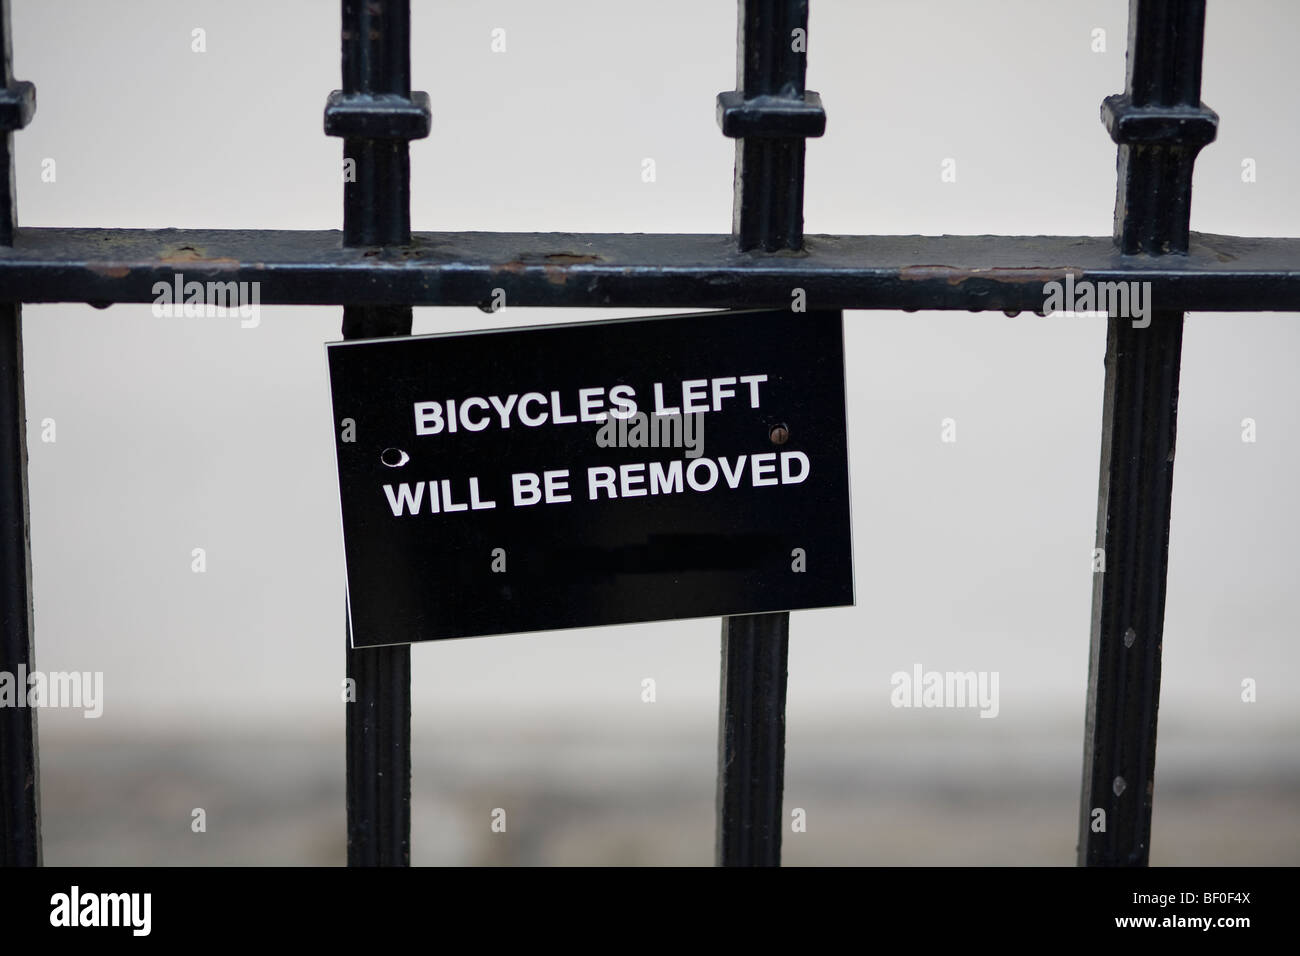 """White writing, """"Bicycles Left Will Be Removed"""", on black sign hung on black wrought iron railings. London, UK. - Stock Image"""